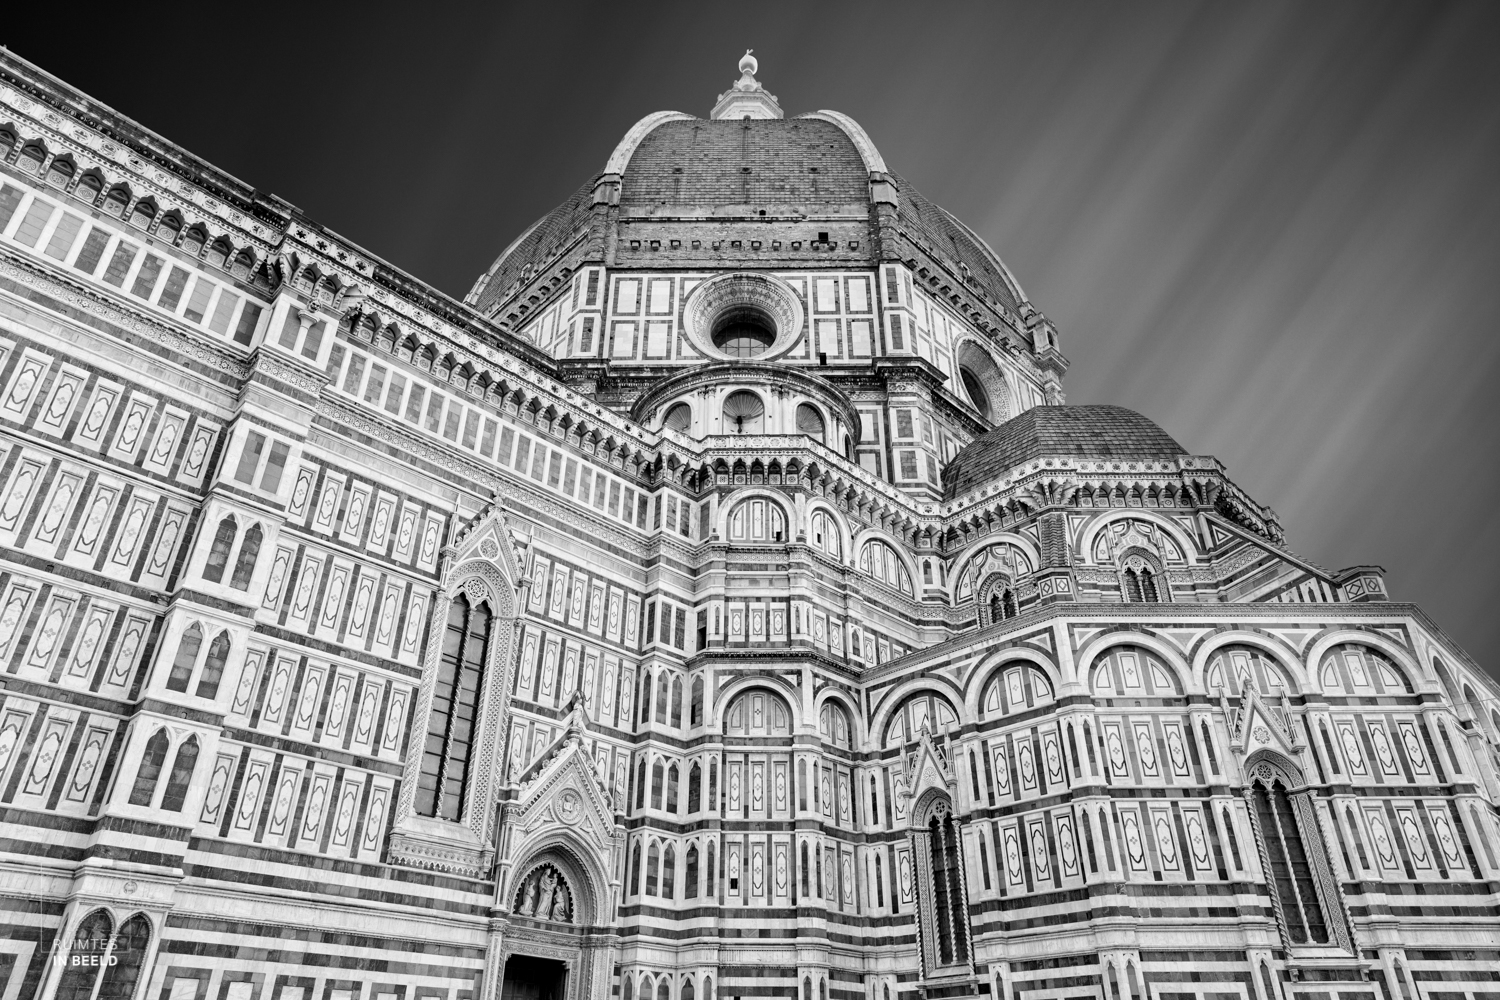 Dom in Florence | Duomo in Firenze, Italy